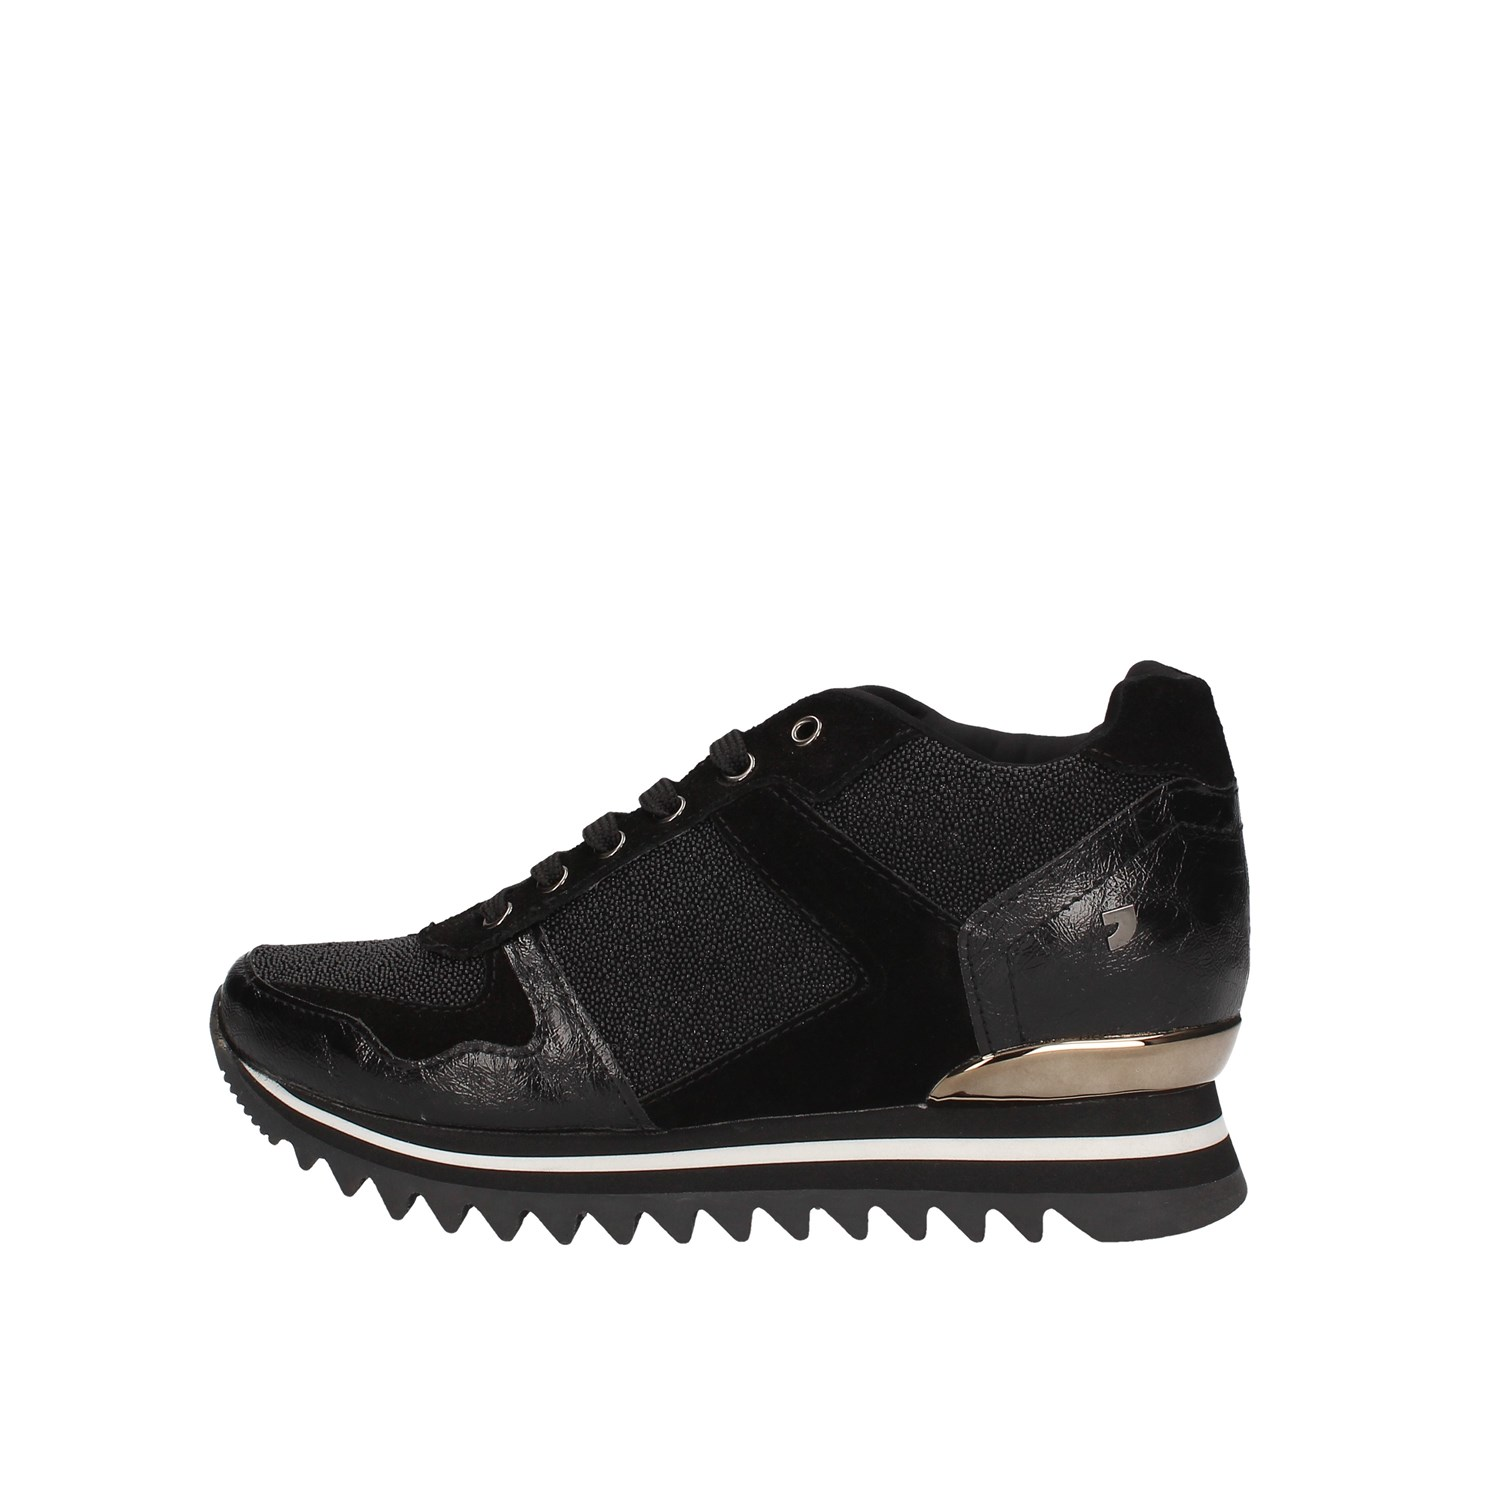 Gioseppo 56898 Black Shoes Woman